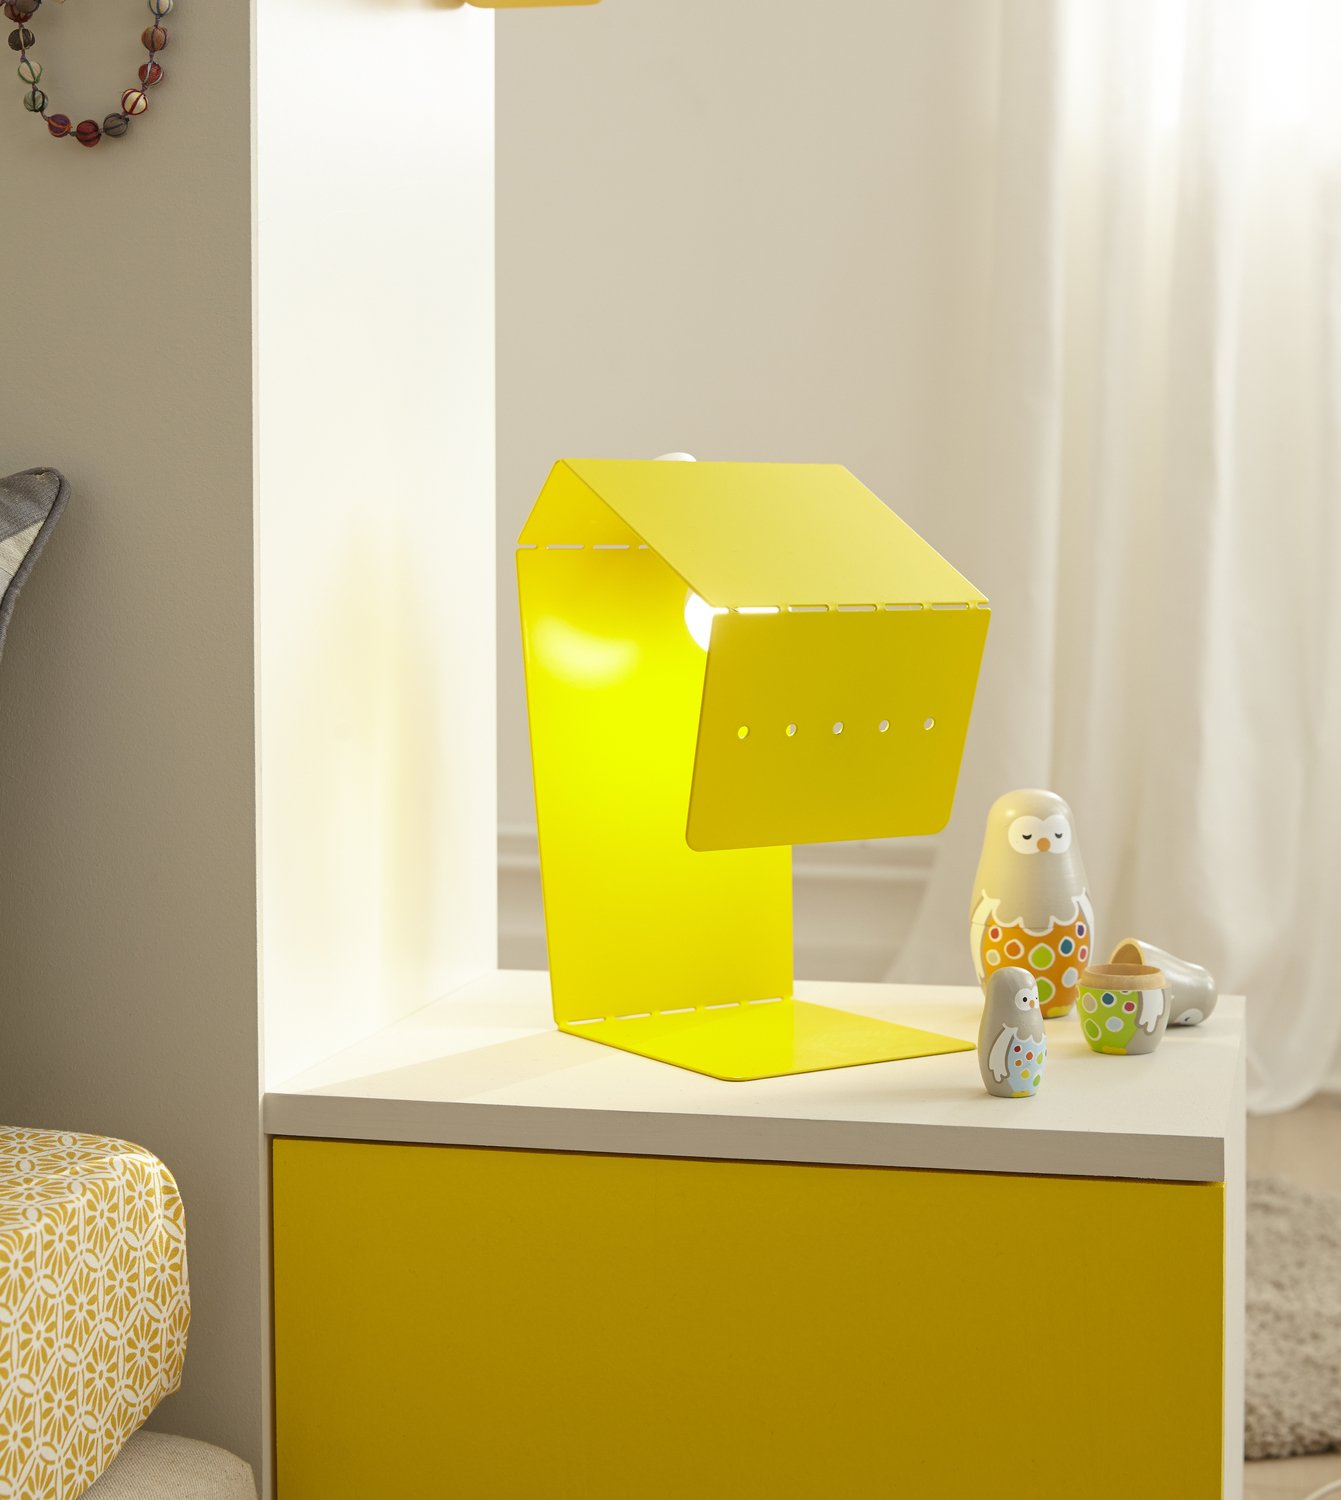 une lampe de chevet jaune contemporaine pour la chambre leroy merlin. Black Bedroom Furniture Sets. Home Design Ideas